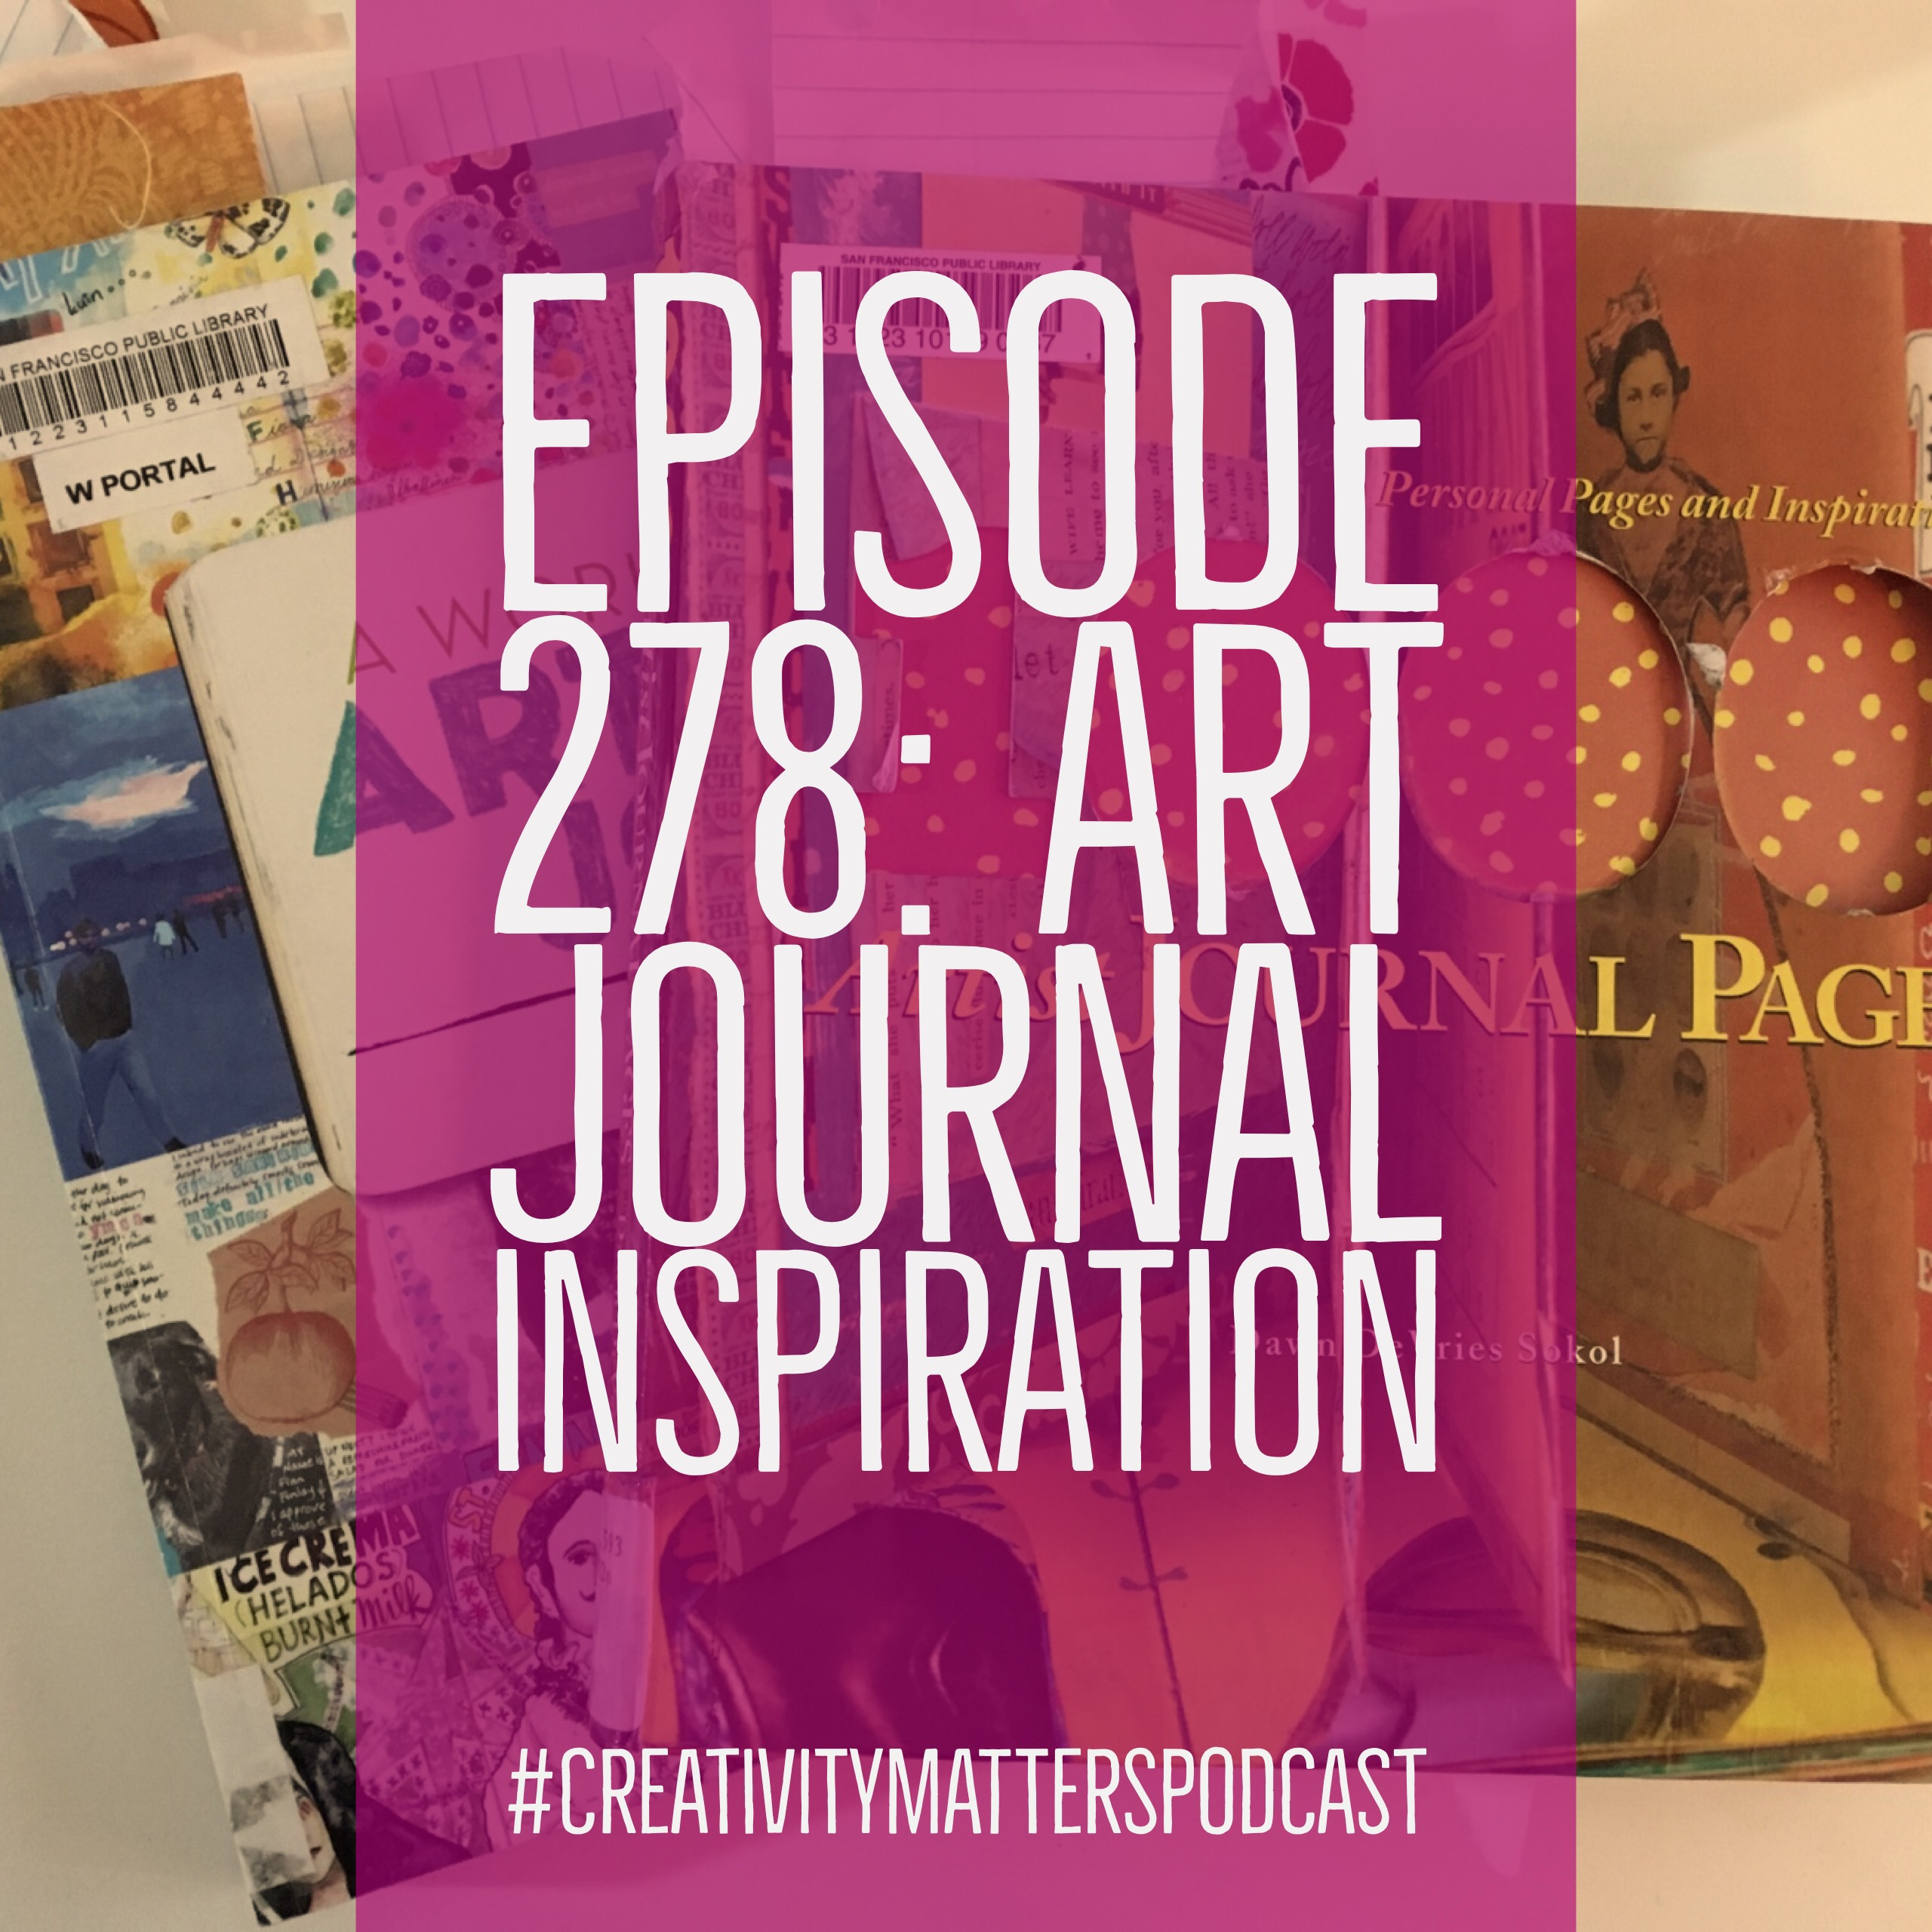 Episode 278: Art Journal Inspiration